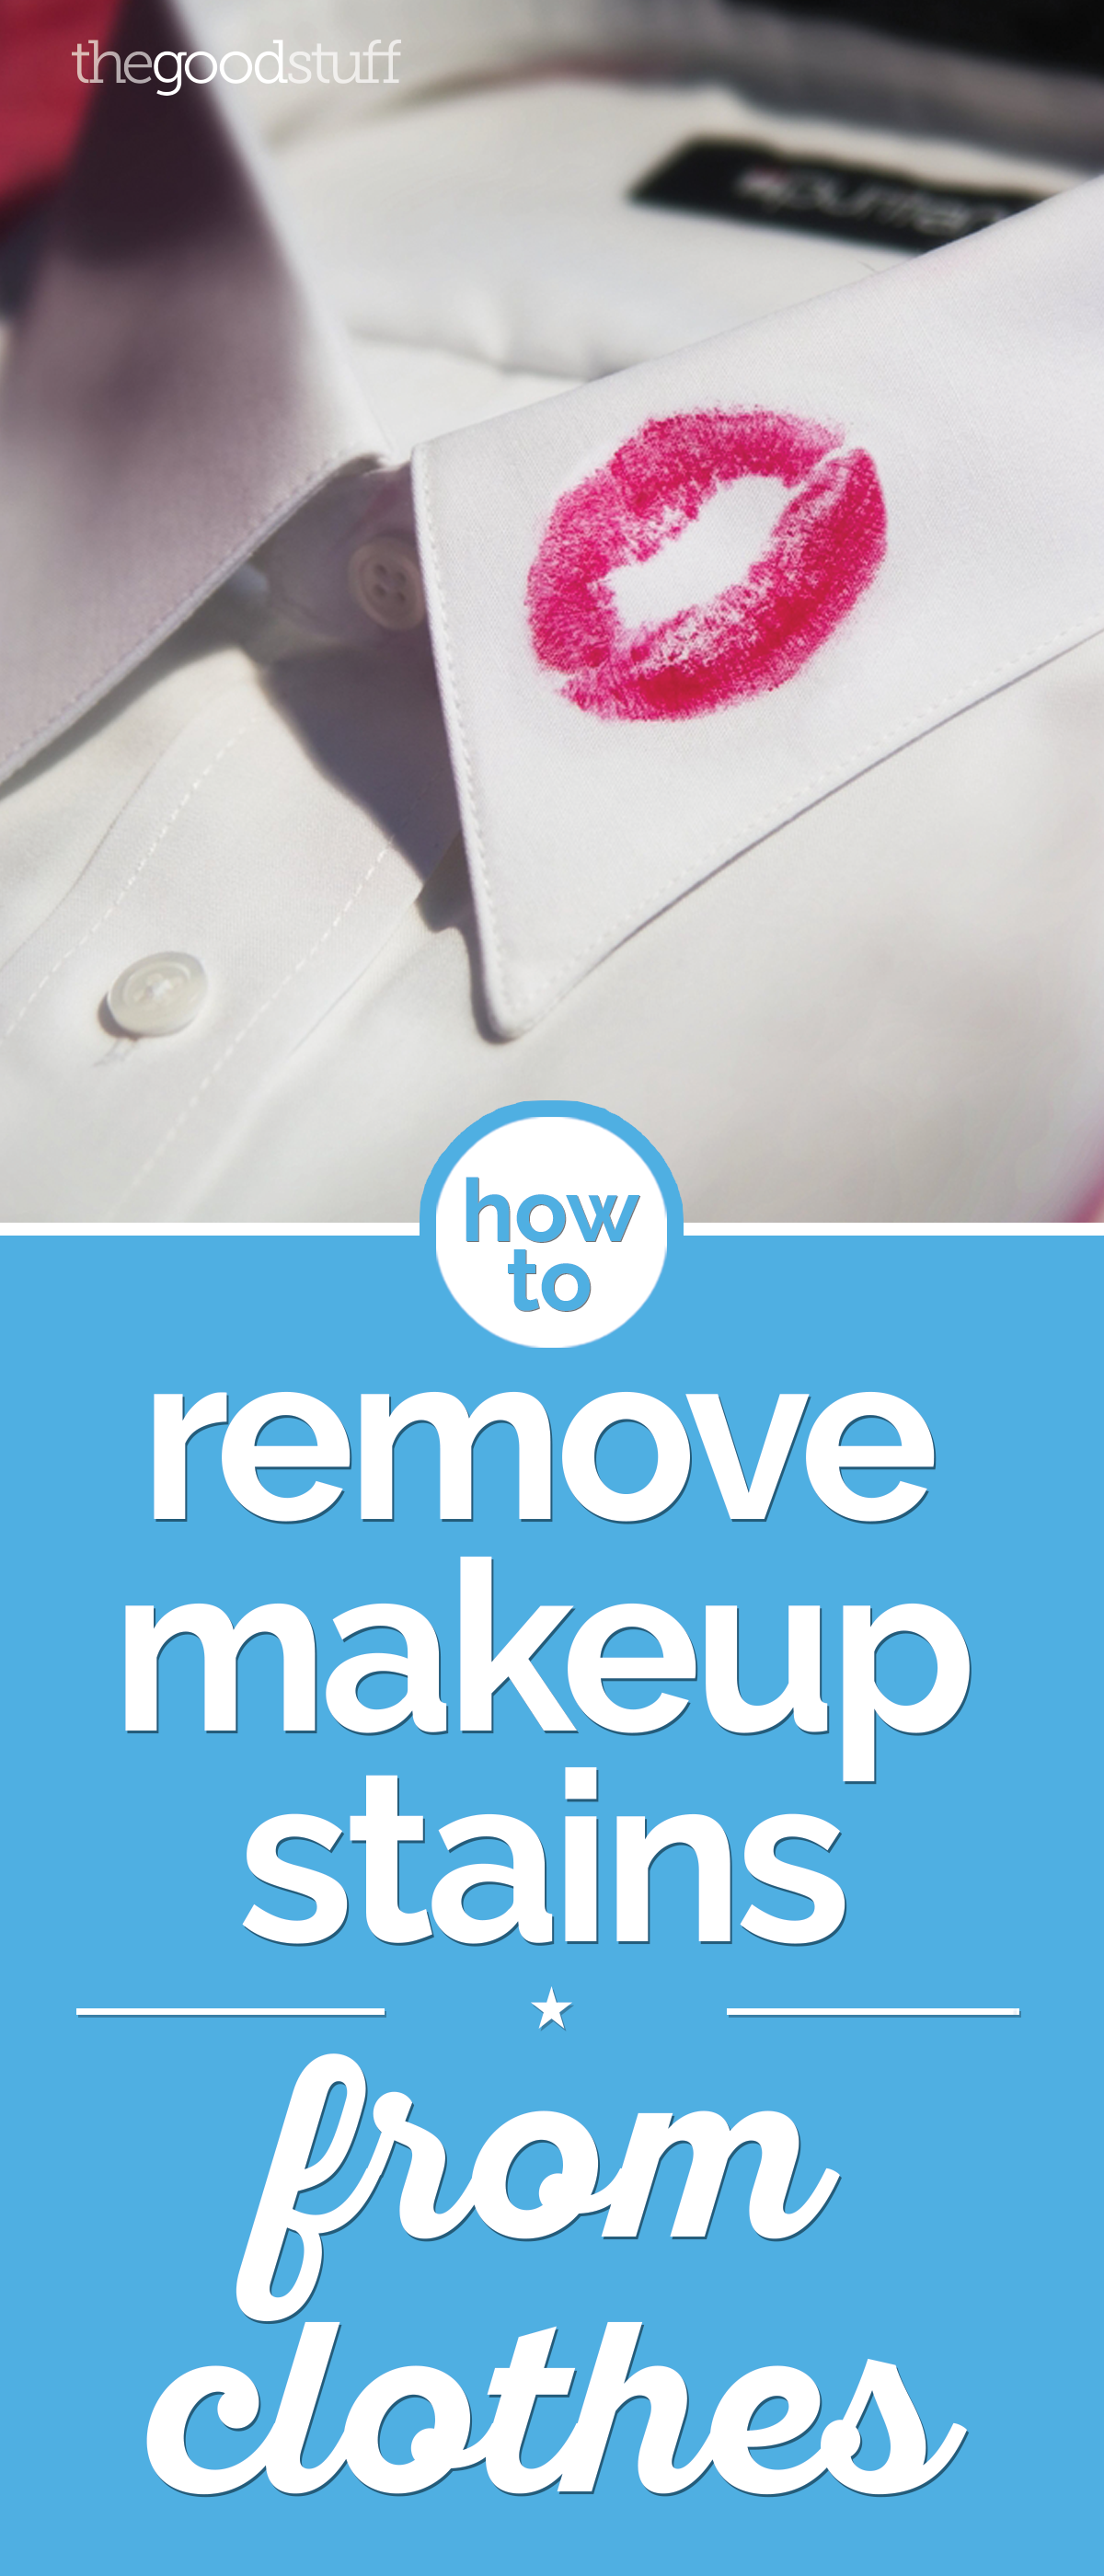 How to Remove Makeup Stains from Clothes Remove makeup